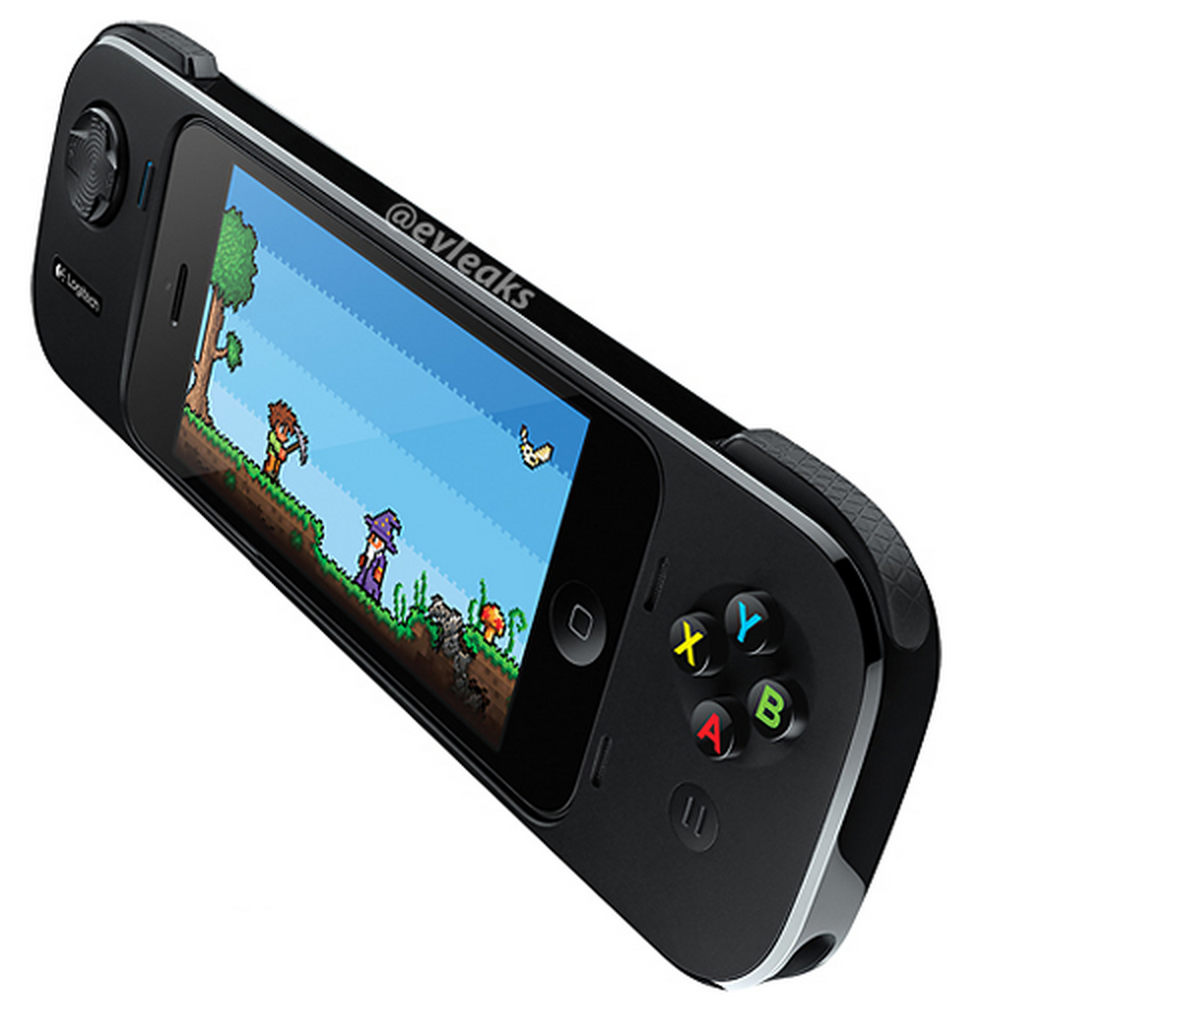 MFi iPhone game controller from Logitech